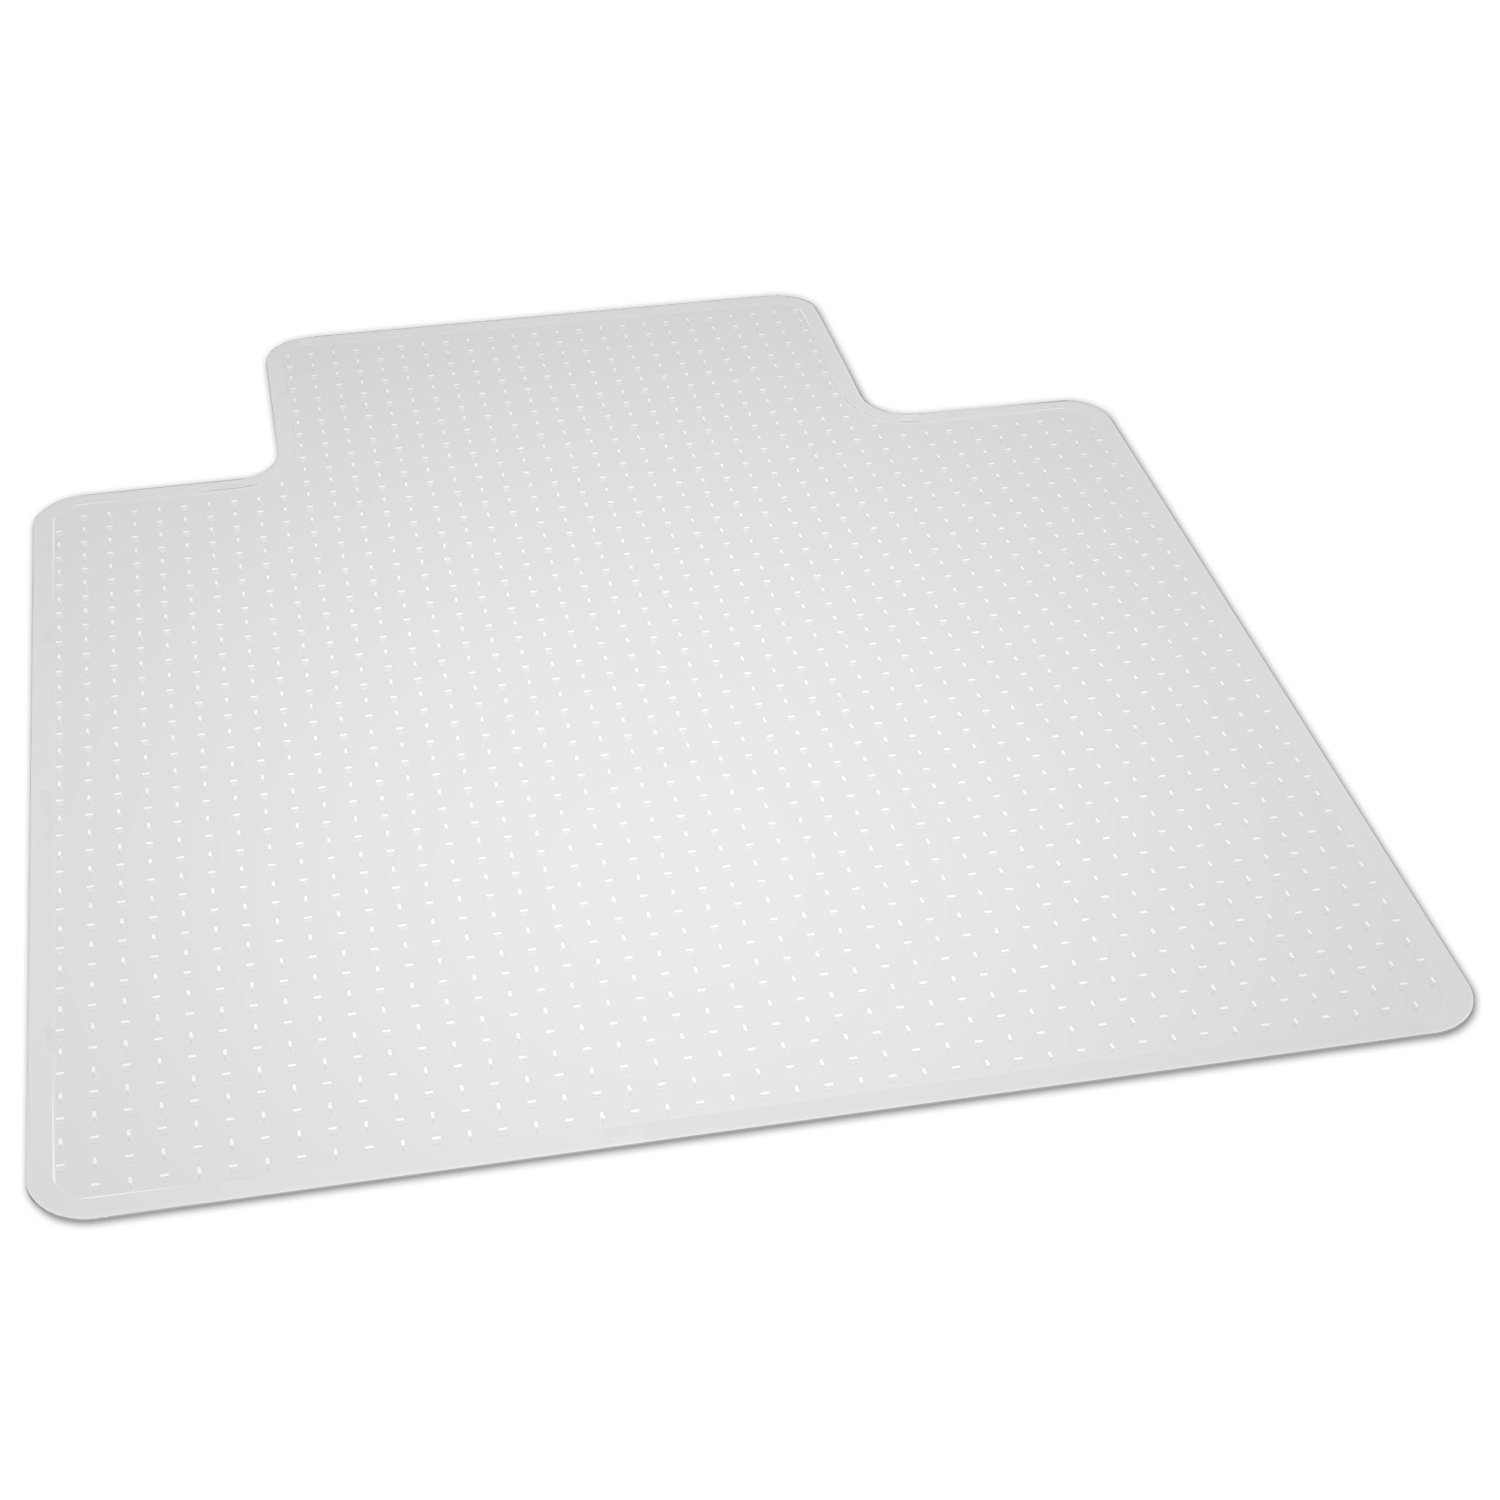 45'' x 53'' - lip Premium Thickness Chair Mats | Superior 1/5 Inch Thickness Specifically Designed For Thick Carpet | Easy Chair Roll | No-Crack Guarantee | Free Lifetime Replacement | Many Size Options